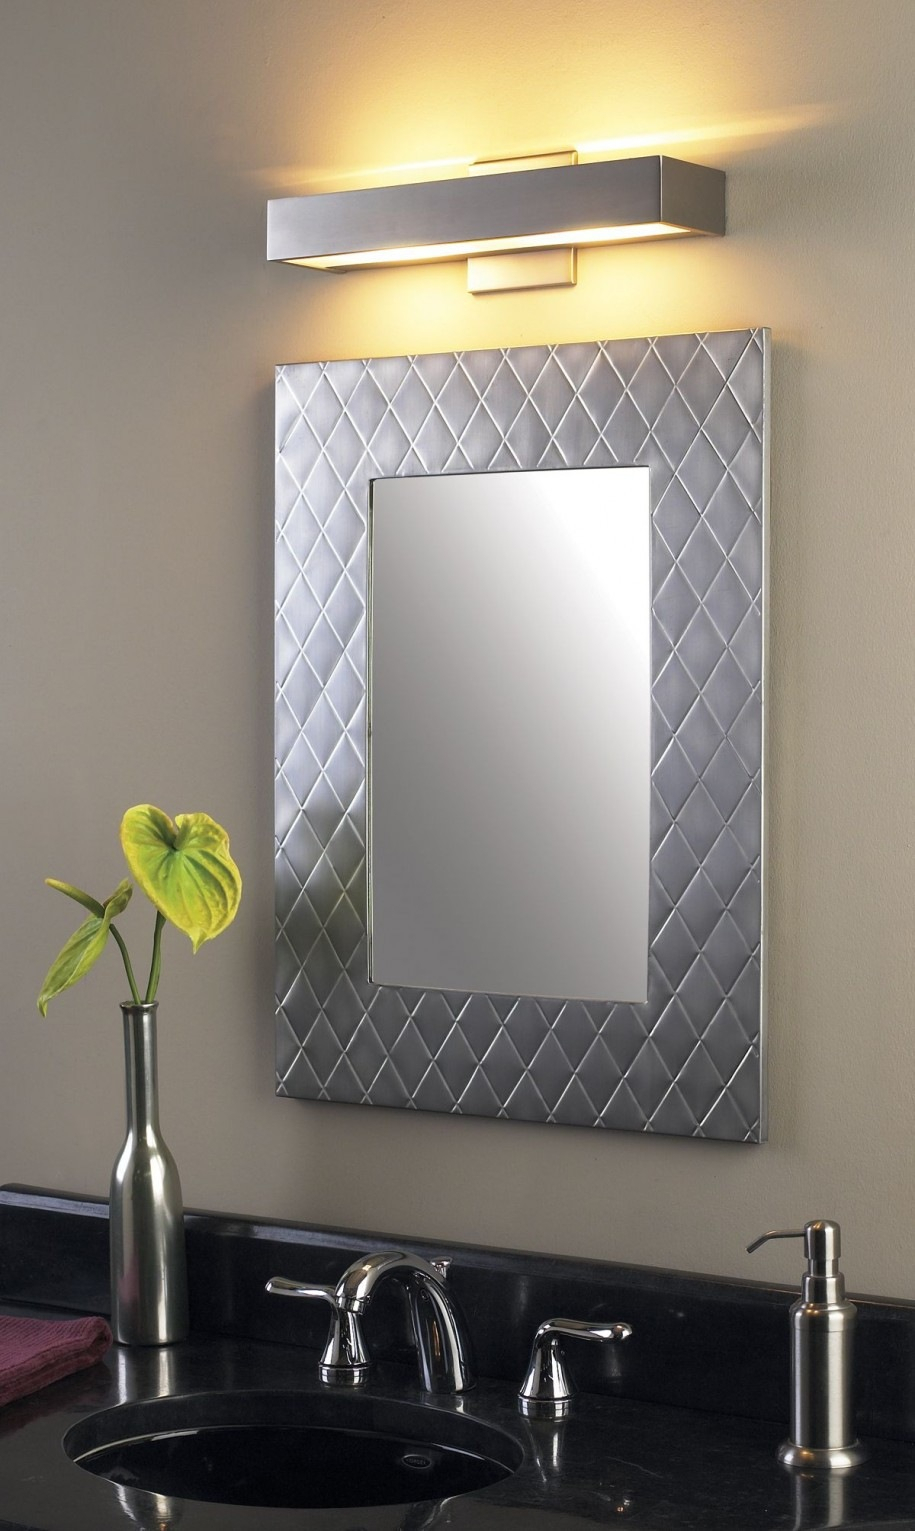 Suddenly Brushed Nickel Wall Mirror Loree Fini #16196 Inside Hogge Modern Brushed Nickel Large Frame Wall Mirrors (Image 18 of 20)